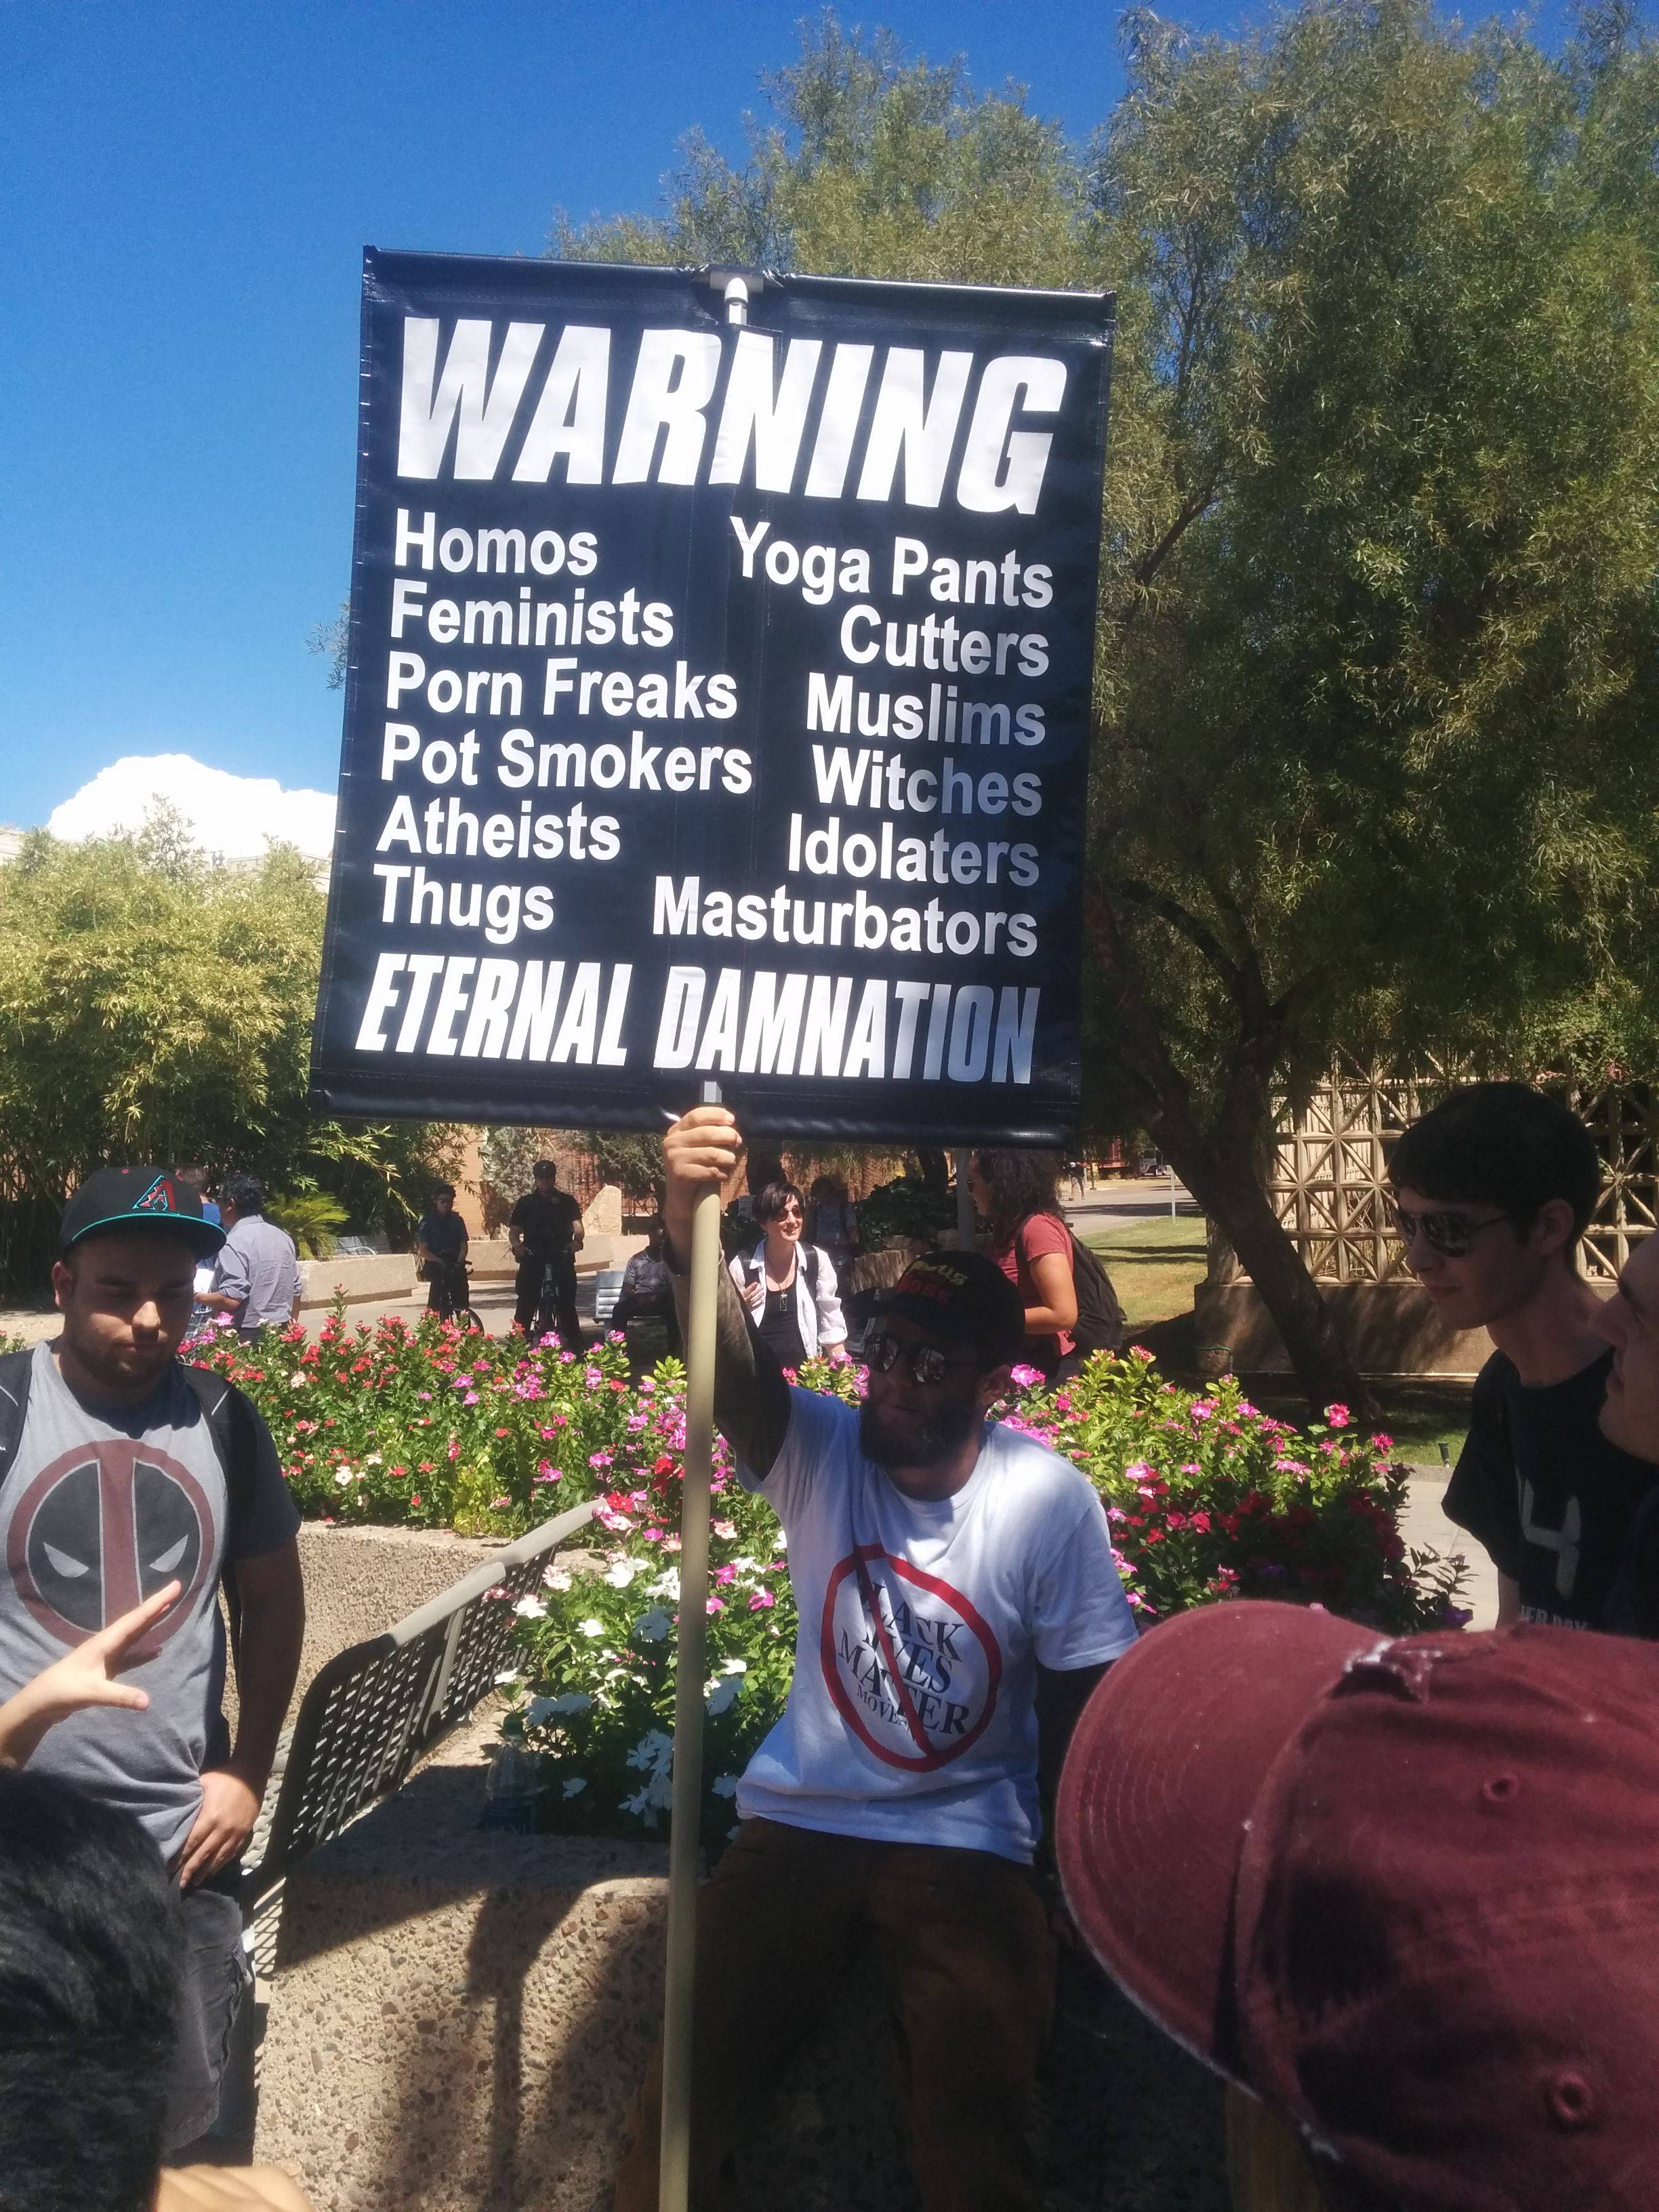 You'll go to hell for yoga pants